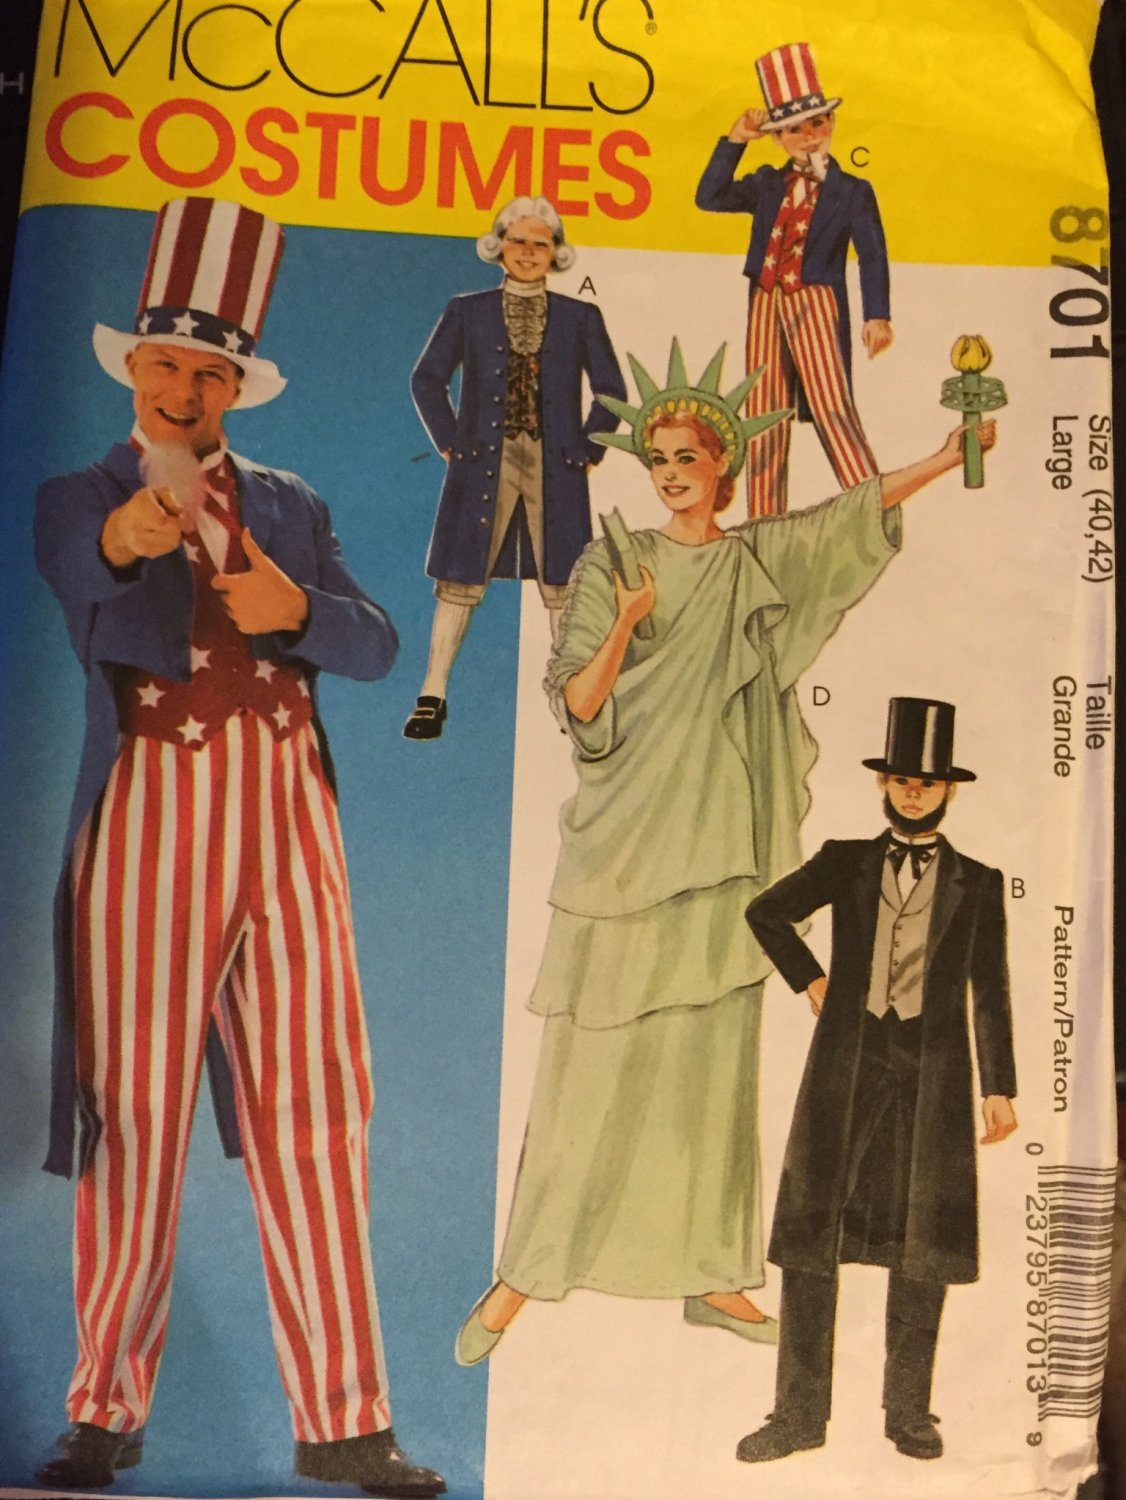 McCalls 8701 Patriotic Costumes pattern Statue of Liberty Abe Lincoln Uncle Sam Size Large (40, 42)